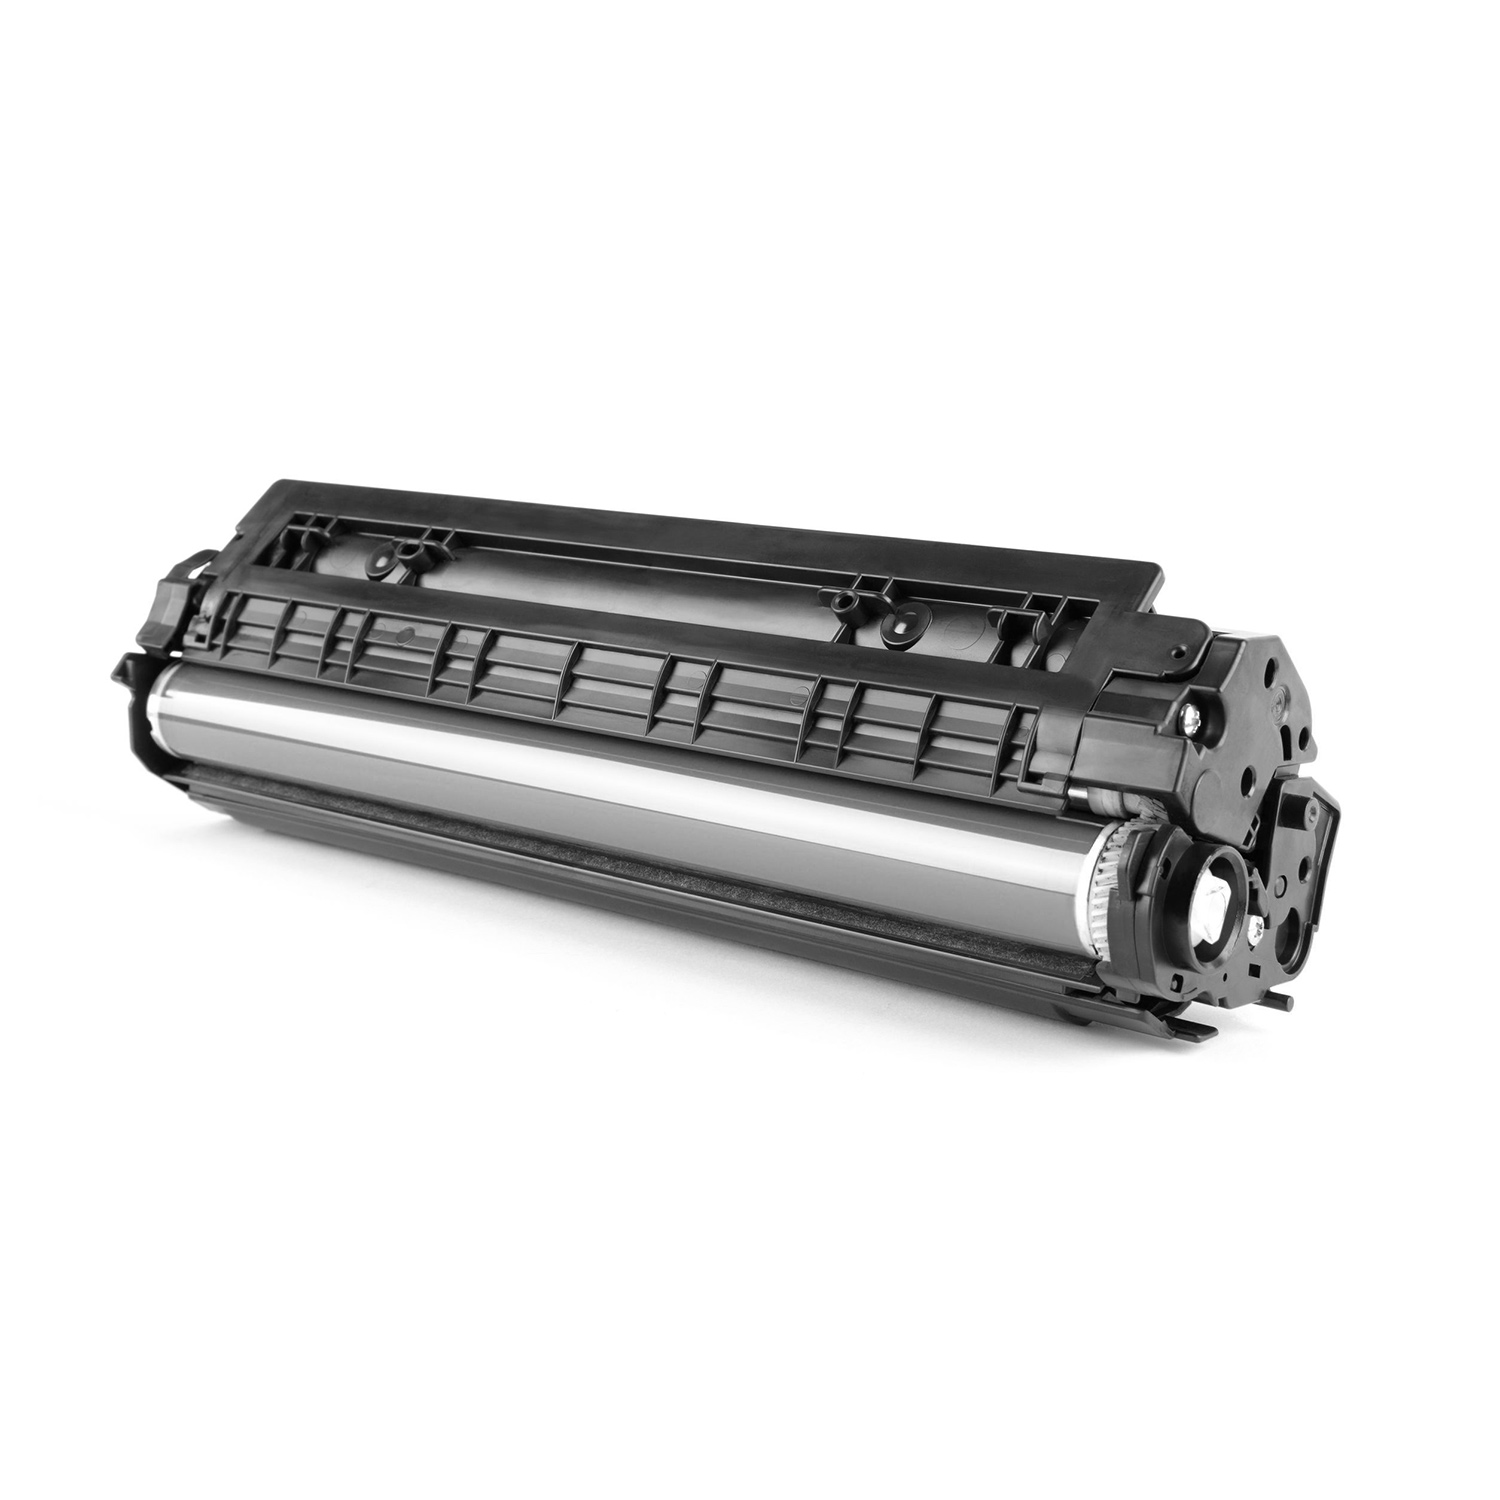 TonerPartenaire HP C4096A Toner XXL (2x 10.000 pages) Lot de 2